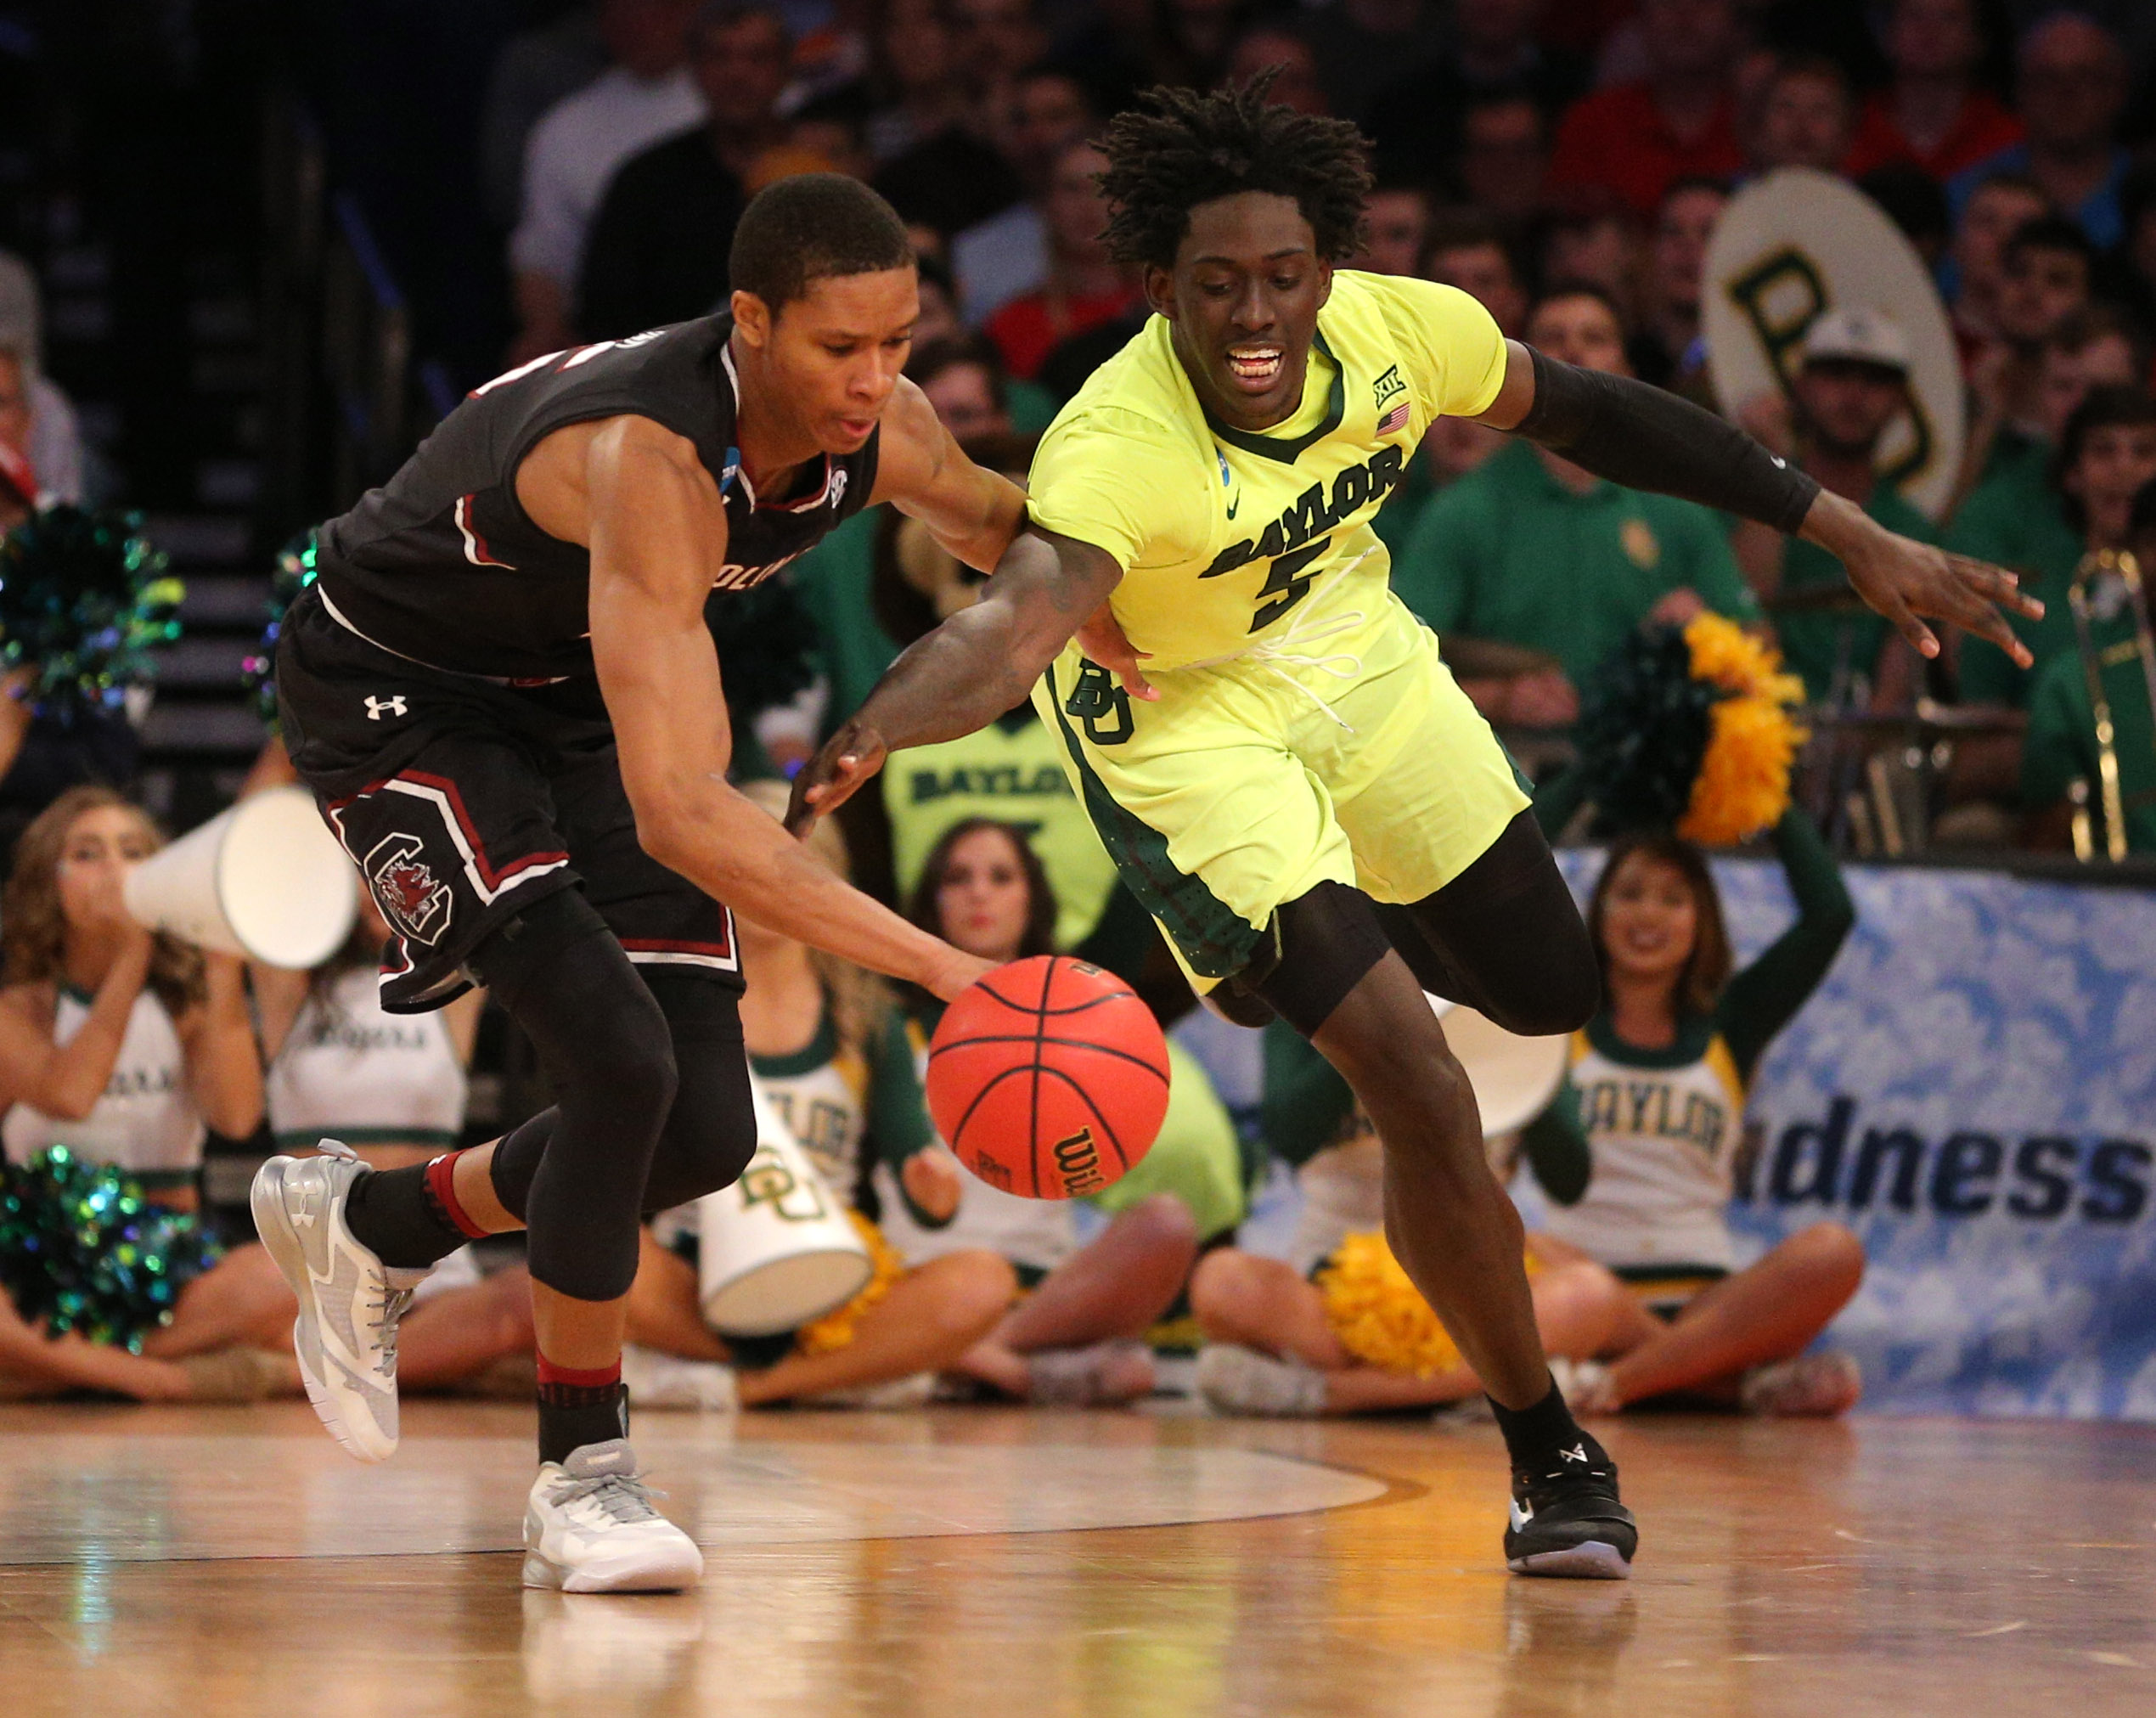 9968357-ncaa-basketball-ncaa-tournament-east-regional-south-carolina-vs-baylor